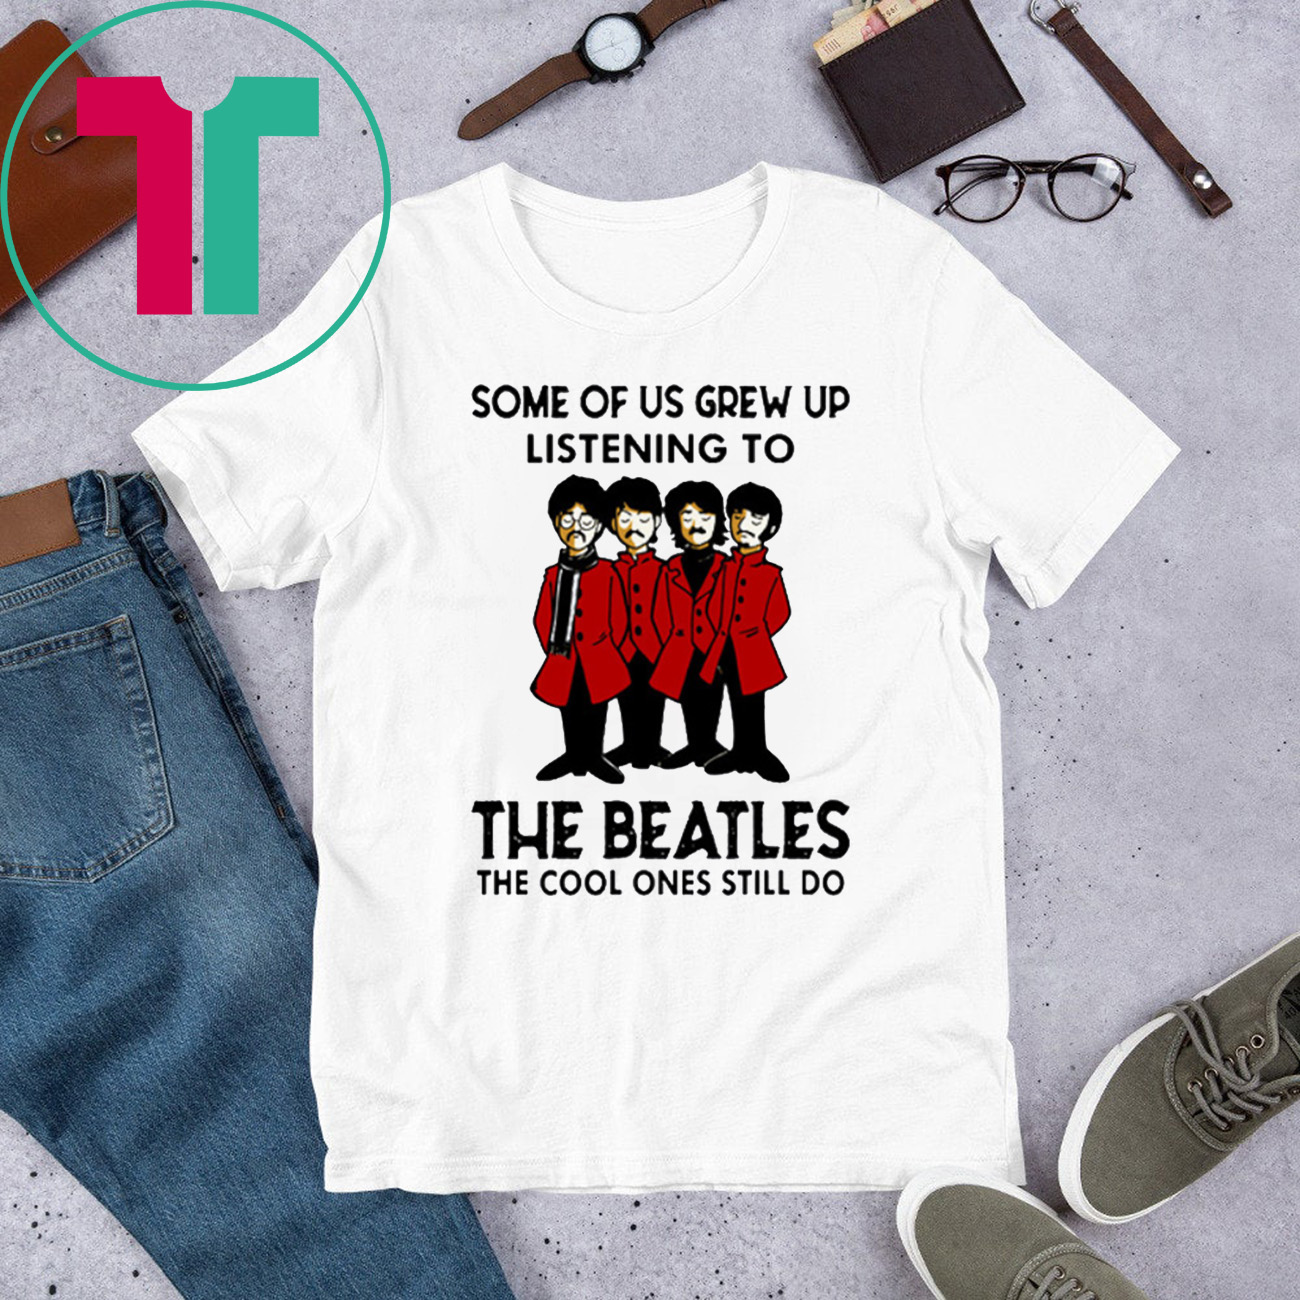 Some Of Us Grew Up Listening To The Beatles The Cool Ones Still Do White Shirt